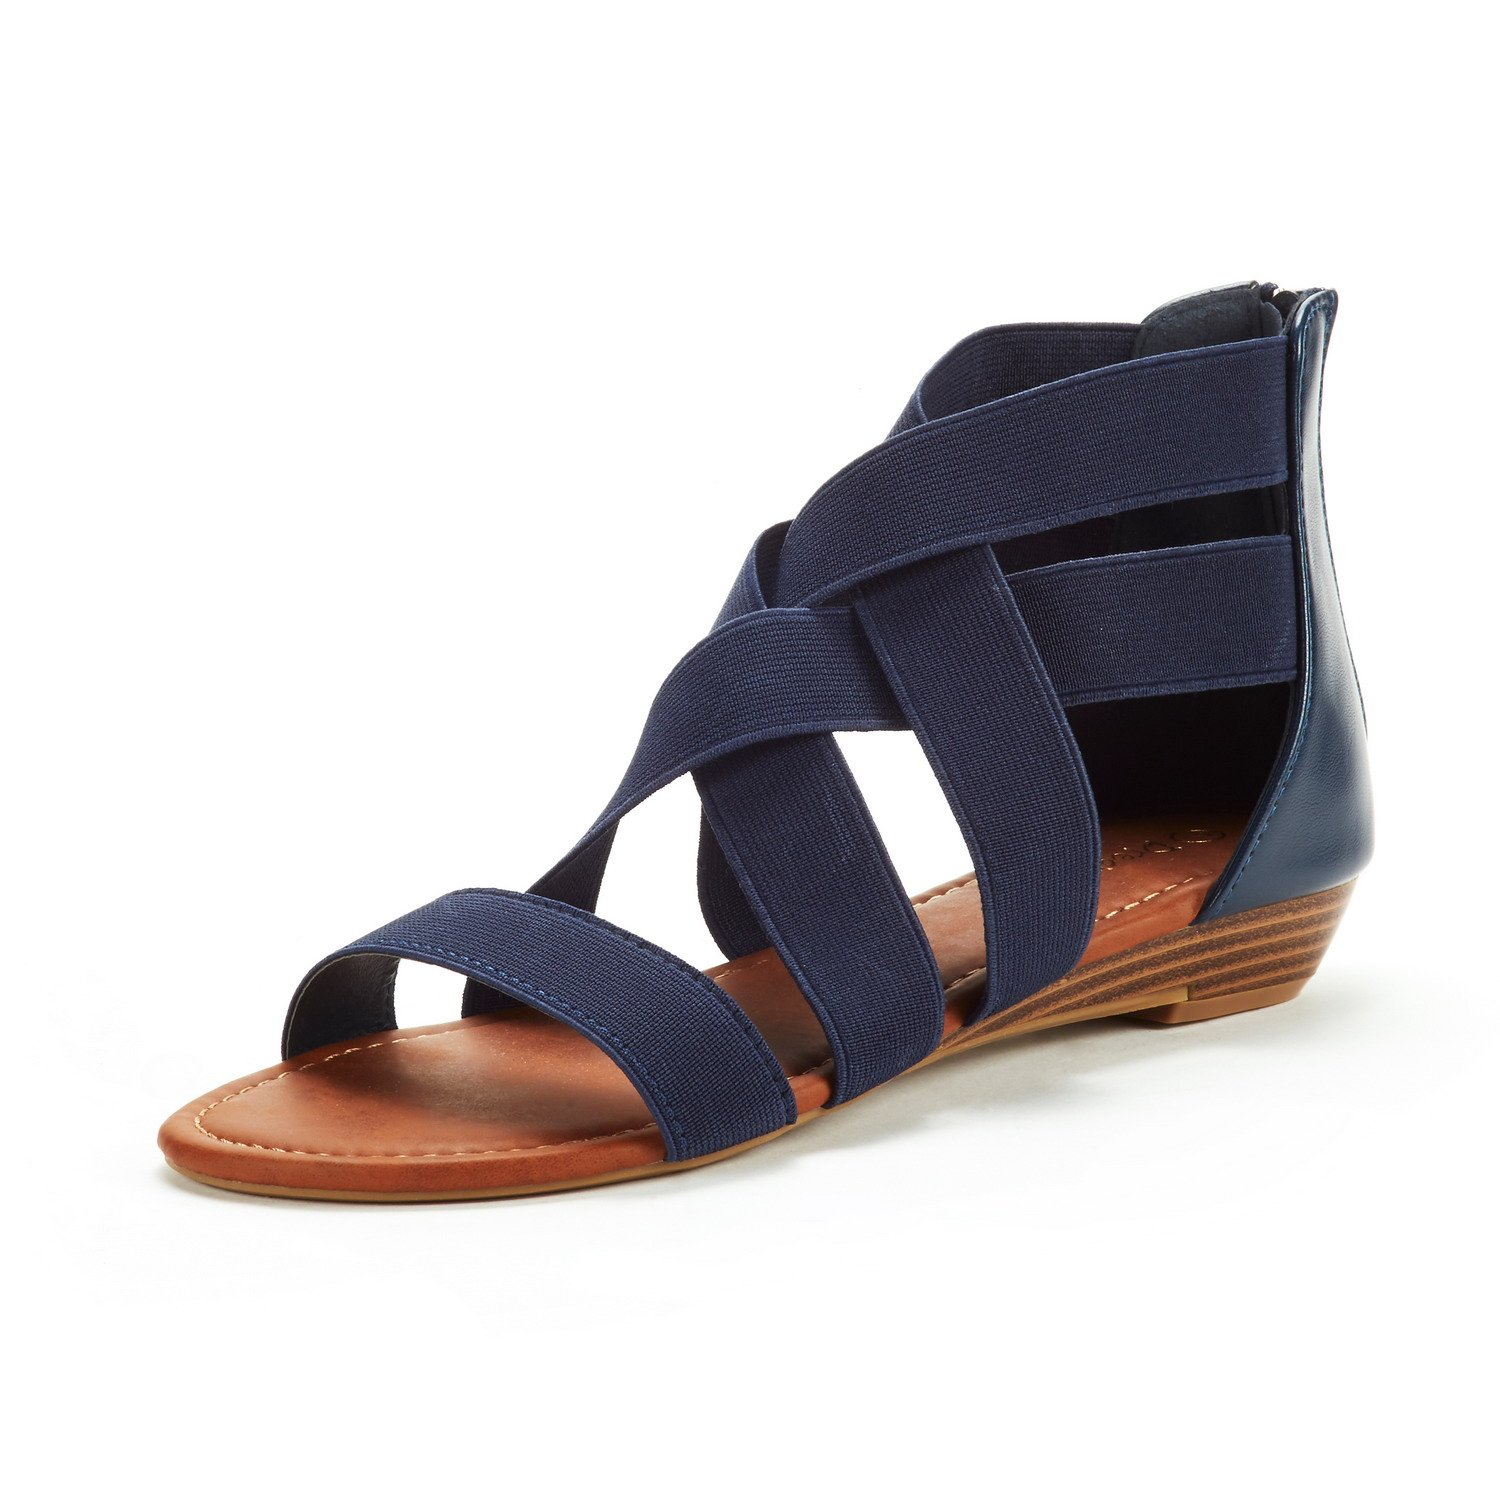 84e1a64371 Galleon - DREAM PAIRS Women's ELASTICA8 Navy Elastic Ankle Strap Low Wedges  Sandals Size 11 M US